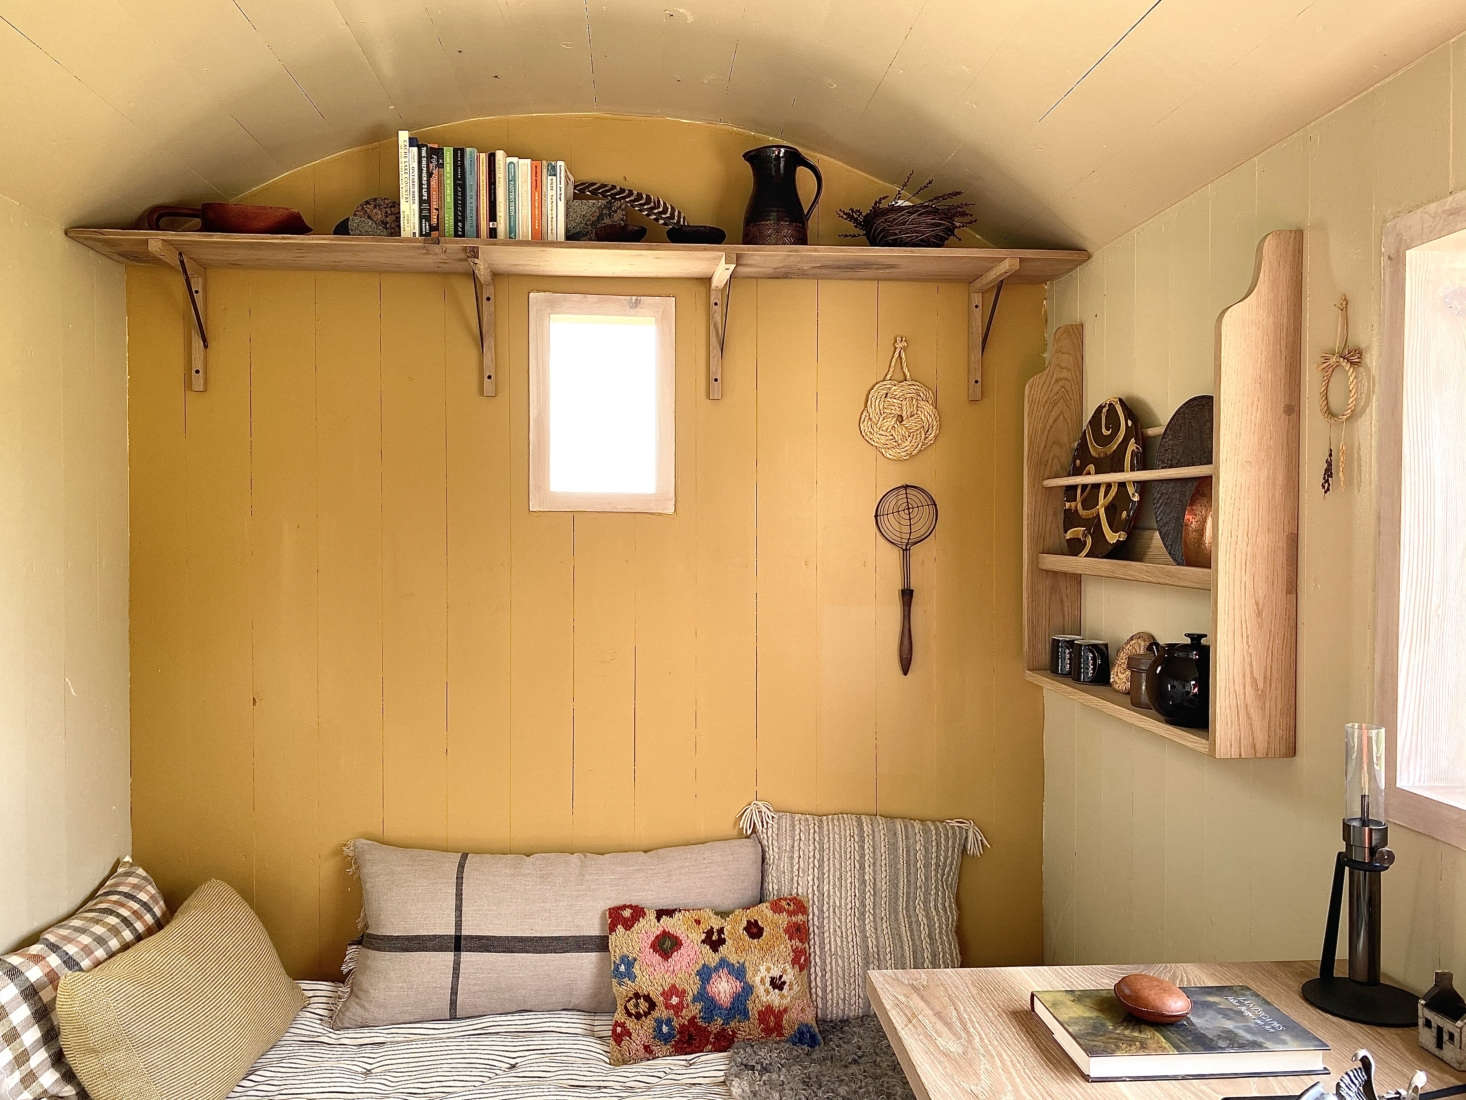 The sofa is a camp cot piled with mattresses, blankets, and pillows. The back wall introduces a bit of color to the room, which is lit by candles and Oil Lamps by Castor.